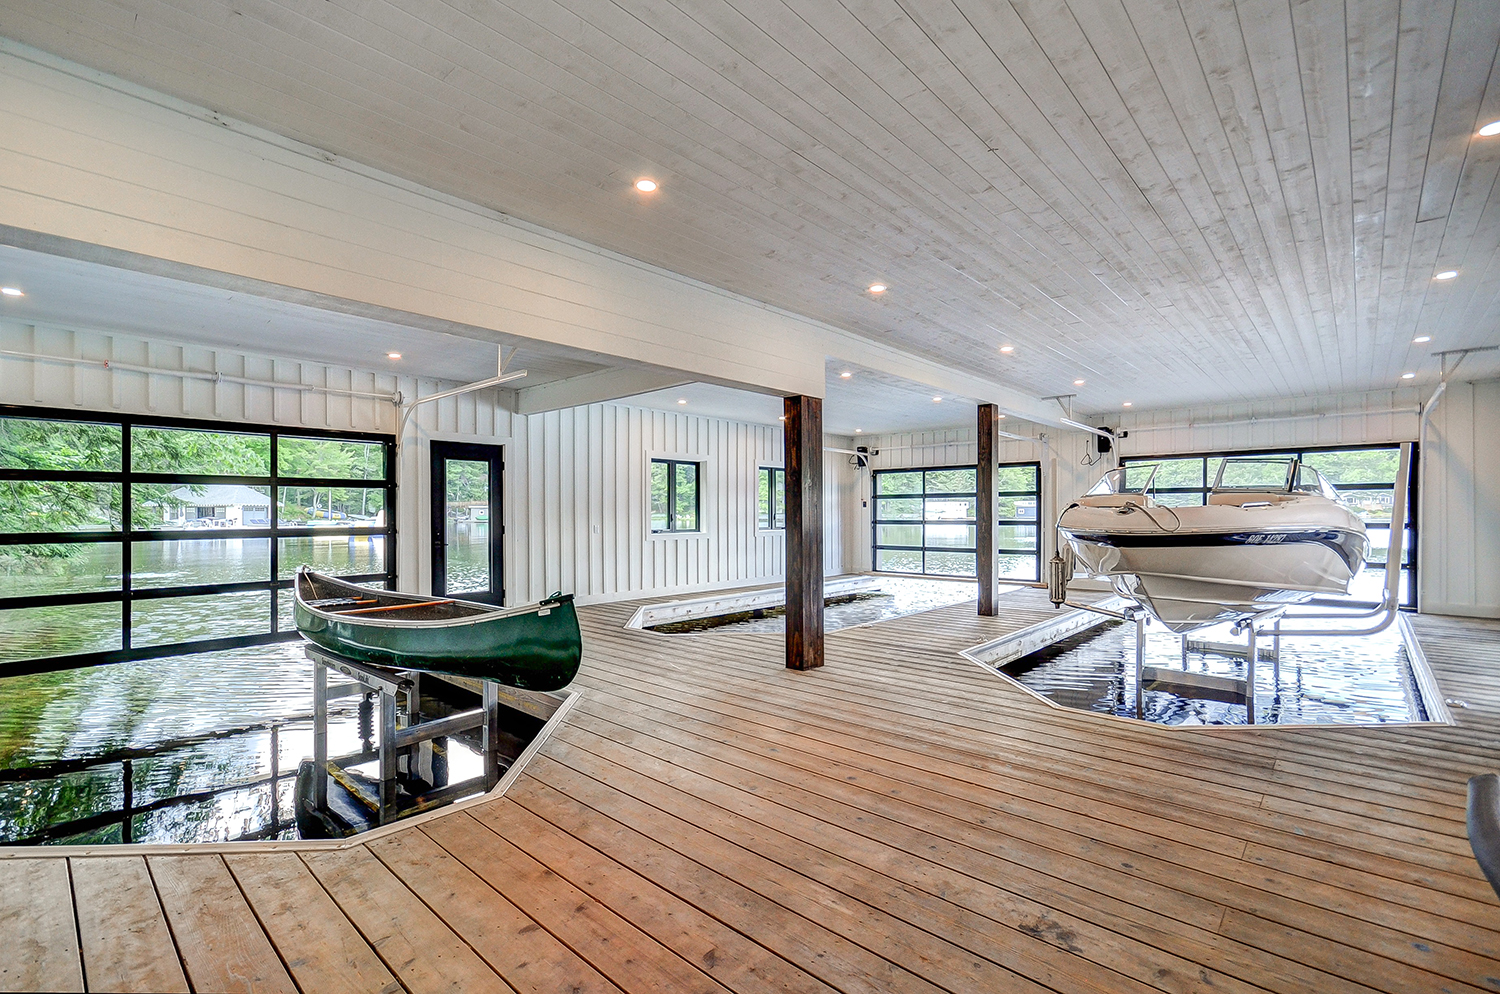 3 slip finished interior boathouse with spot for a canoe by PattyMac